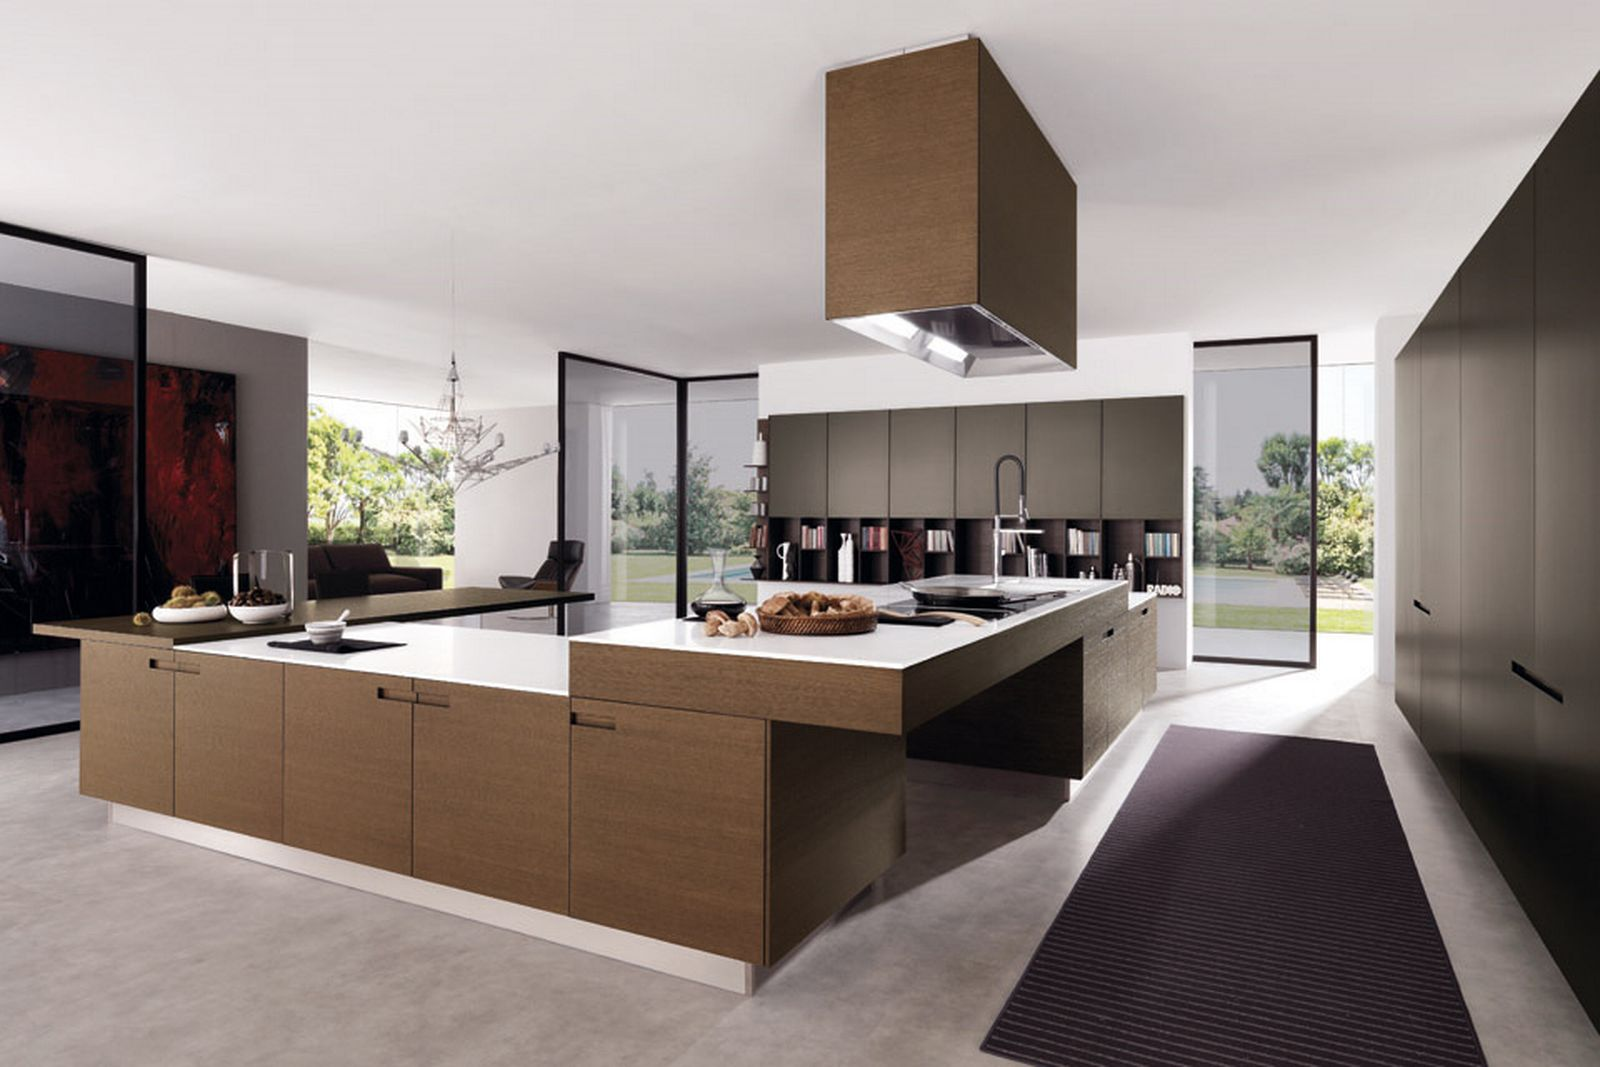 Best Concept Of Modern Kitchen Designs Using Elegant Cabinet and Windows